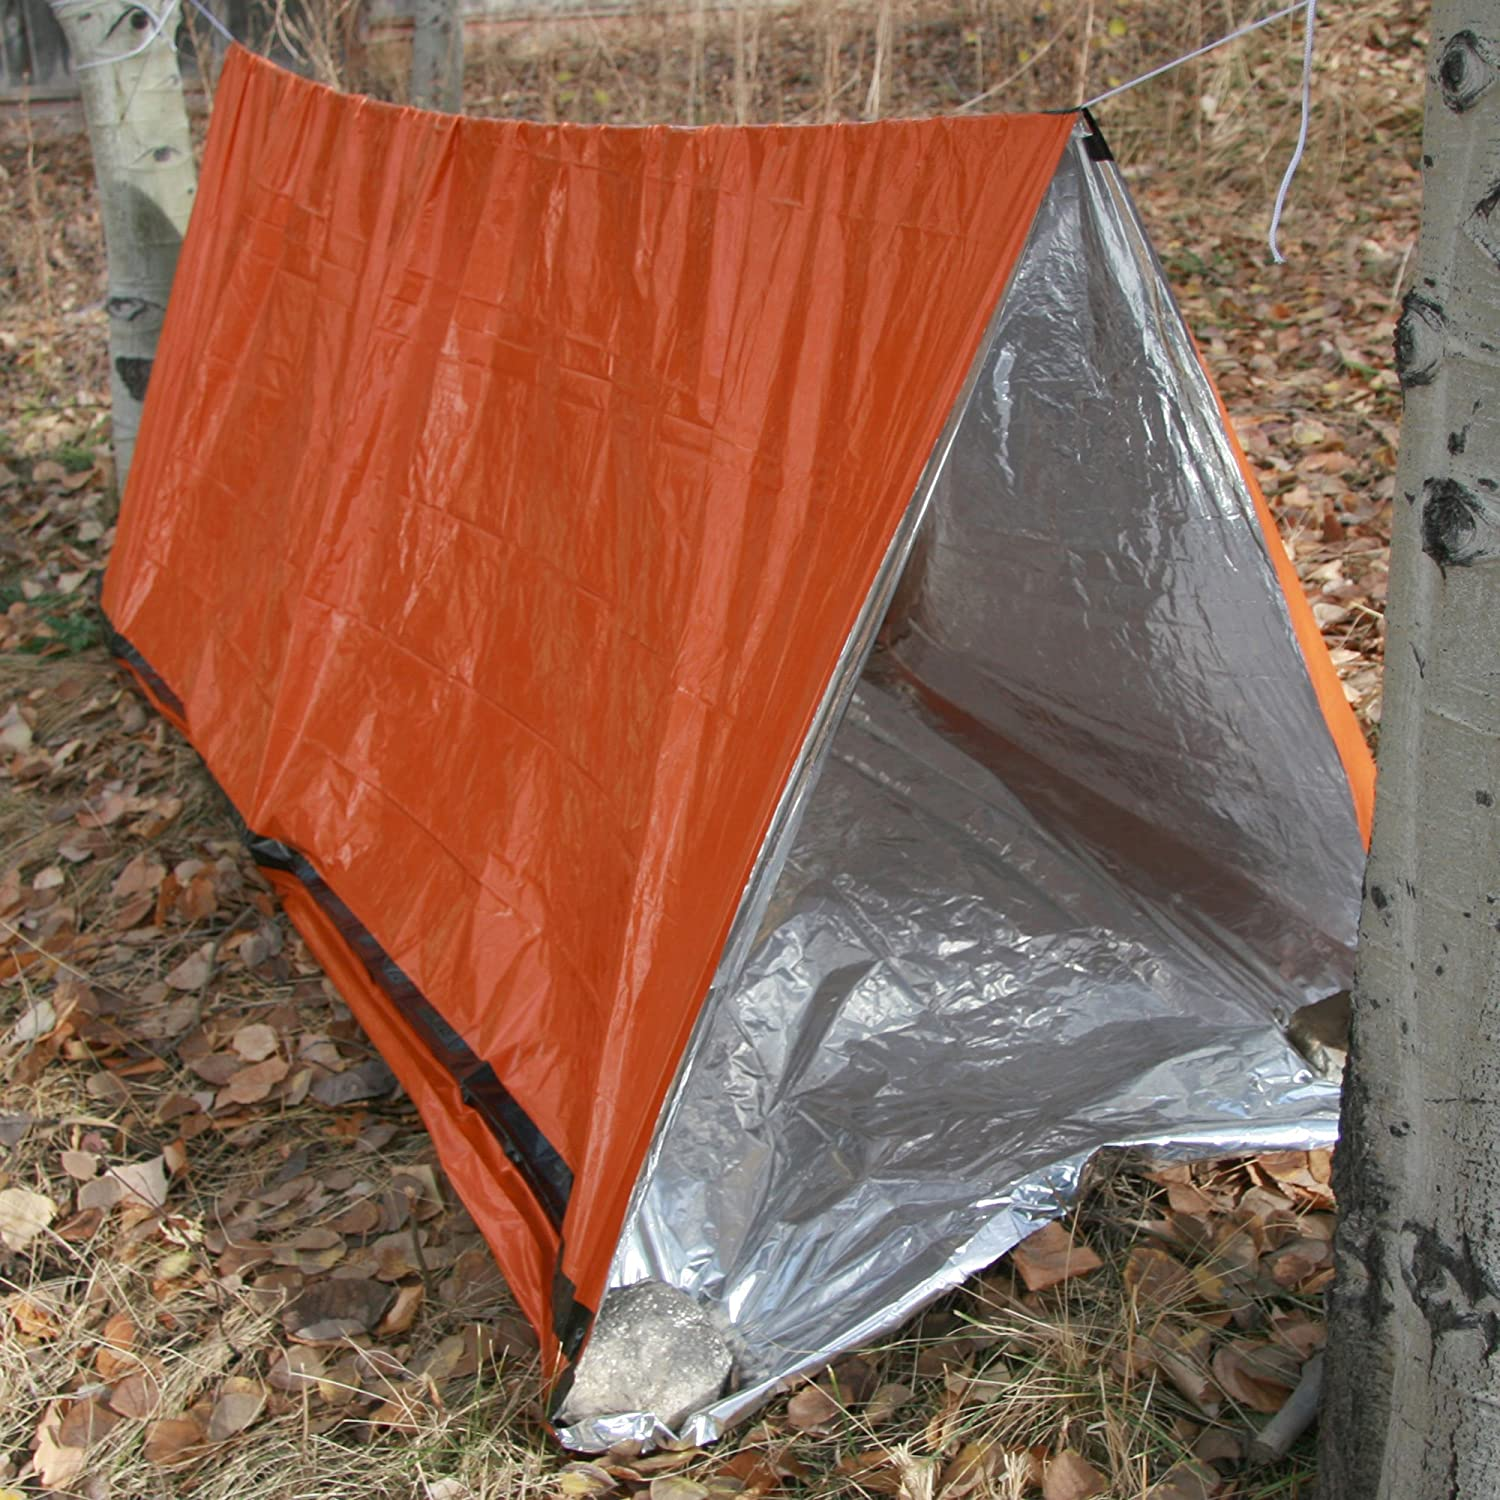 Amazon.com  ThermaSave Reflective Tube Tent 2 Person Reversible Cold/Hot Weather Emergency Shelter by Emergency Zone  Survival Tube Tent  Sports u0026 ... & Amazon.com : ThermaSave Reflective Tube Tent 2 Person Reversible ...